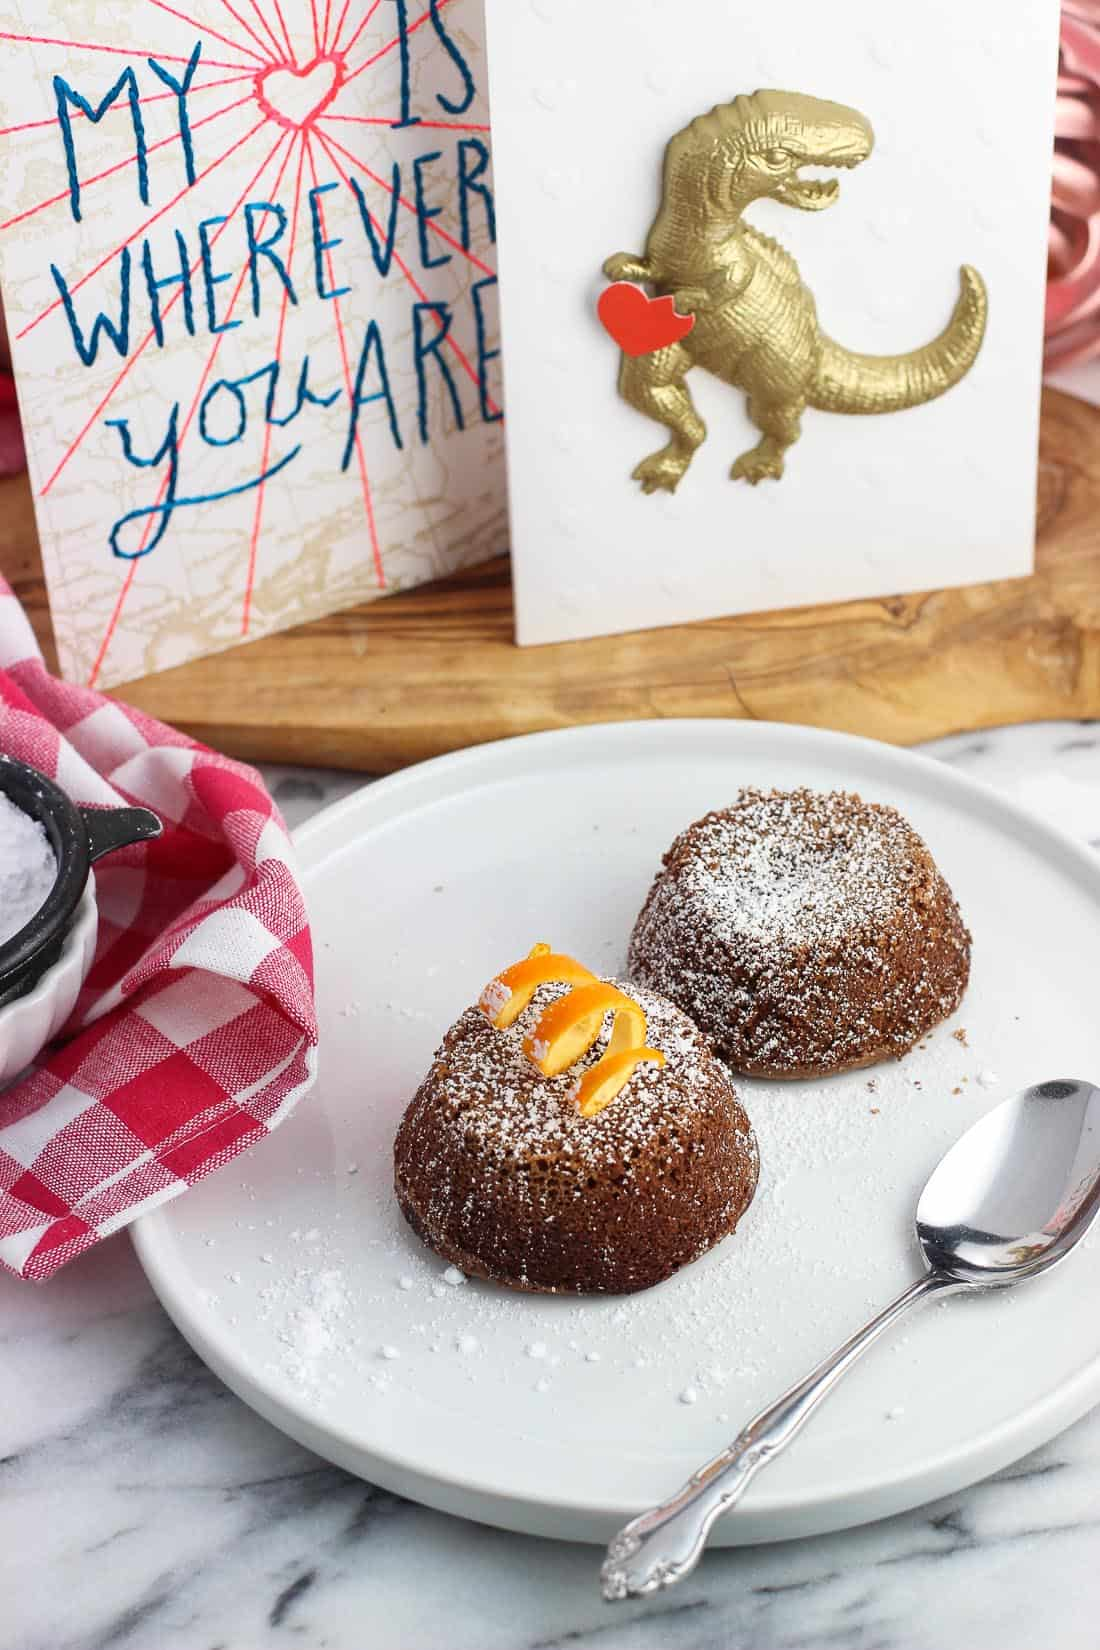 Two lava cakes on a plate with a spoon in front of displayed cards.